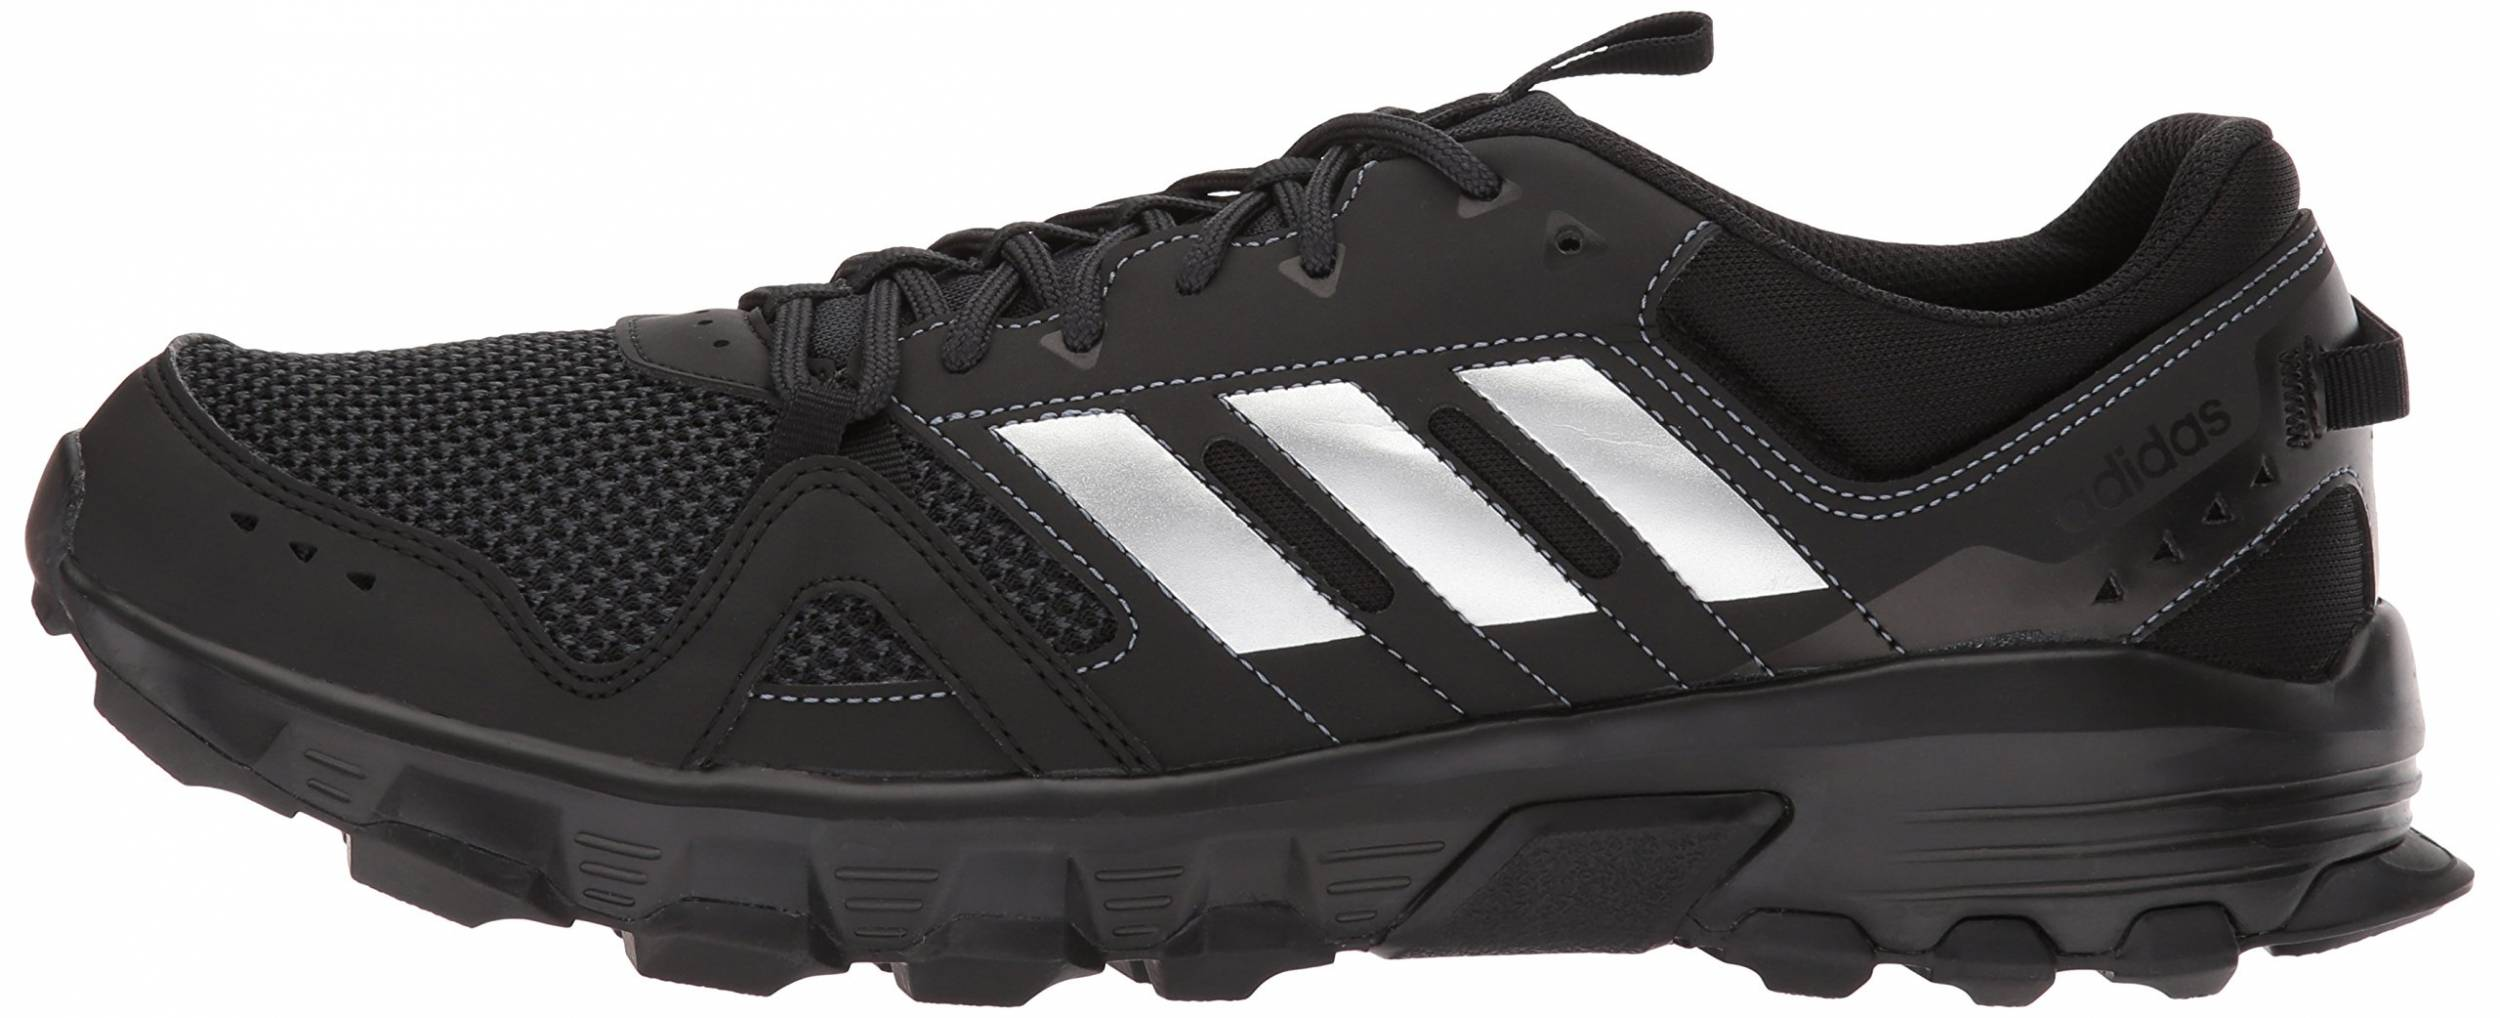 Save 17% on Wide Daily Running Shoes